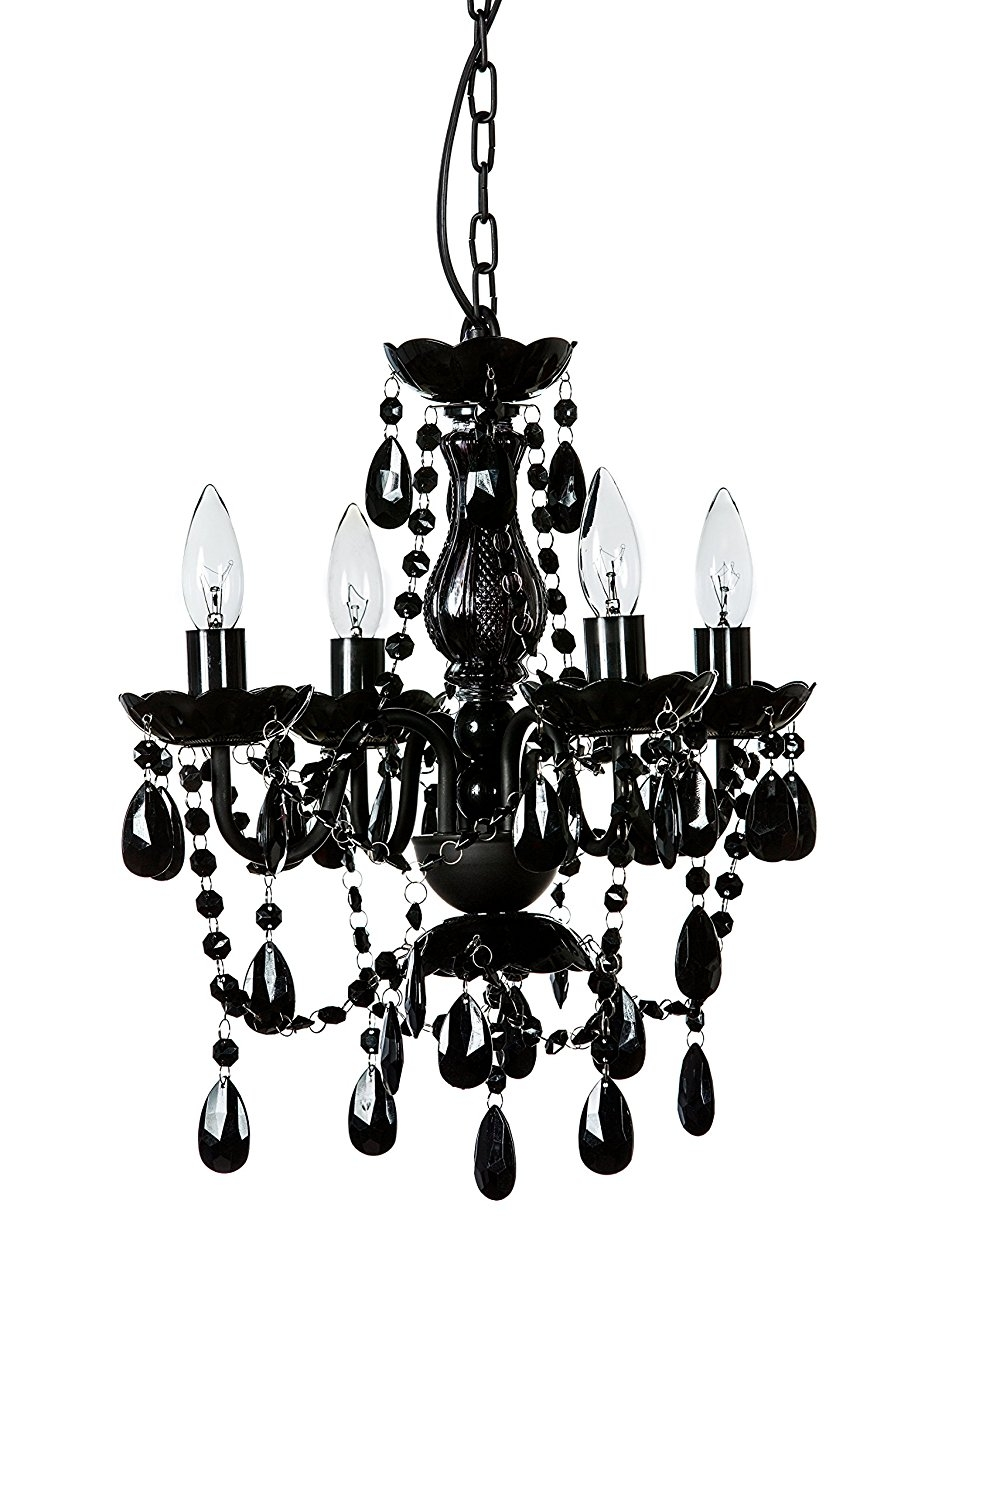 The Original Gypsy Color 4 Light Small Black Chandelier H18 W15 Inside Small Gypsy Chandeliers (Image 22 of 25)